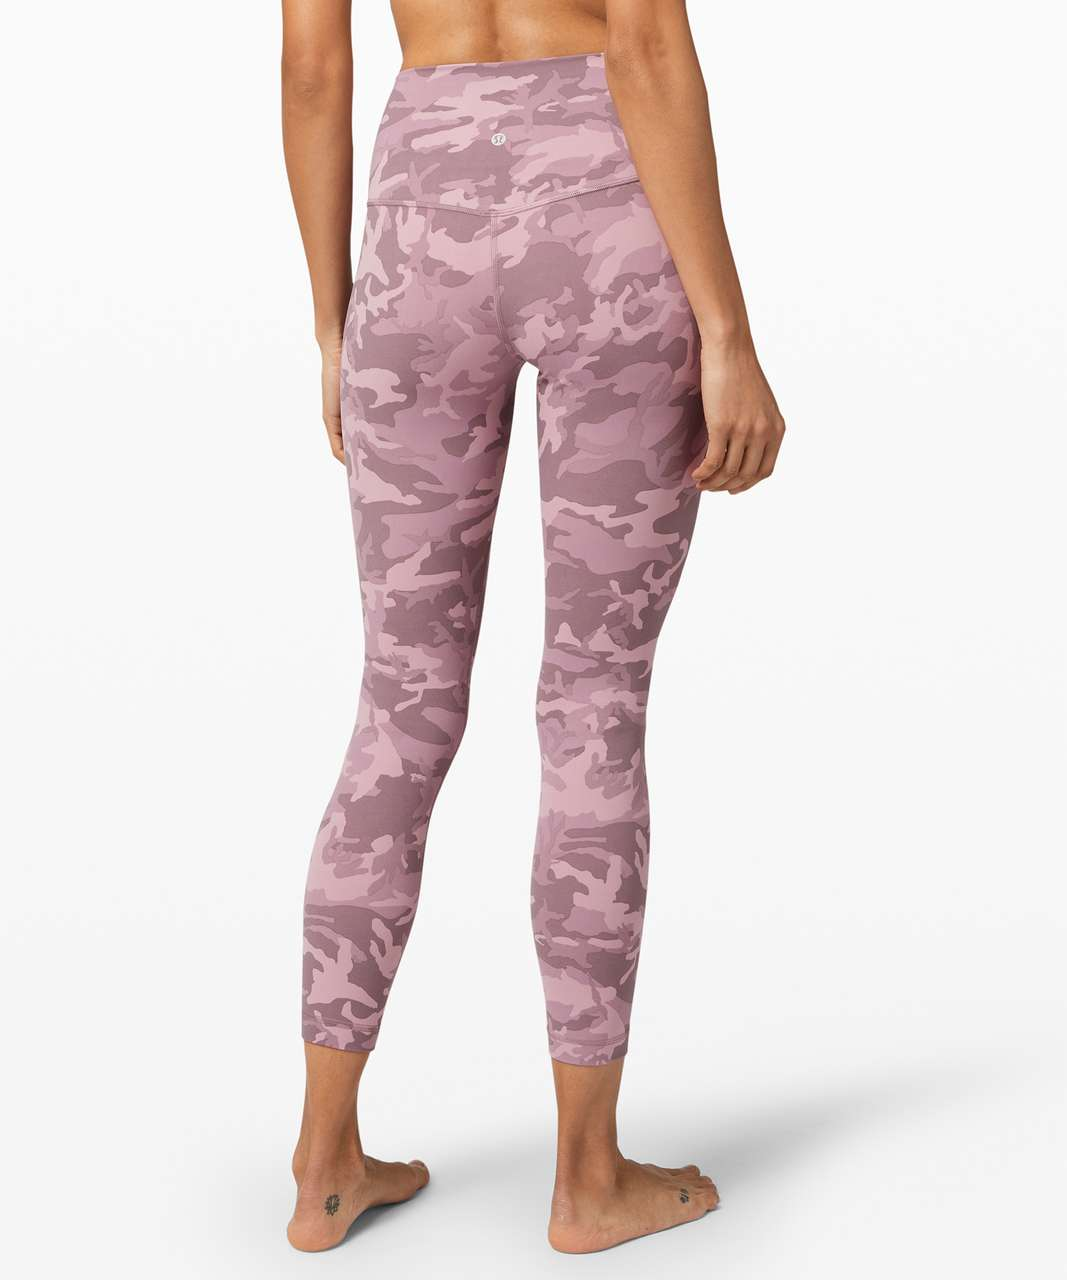 """Lululemon Align Pant II 25"""" - Incognito Camo Pink Taupe Multi"""